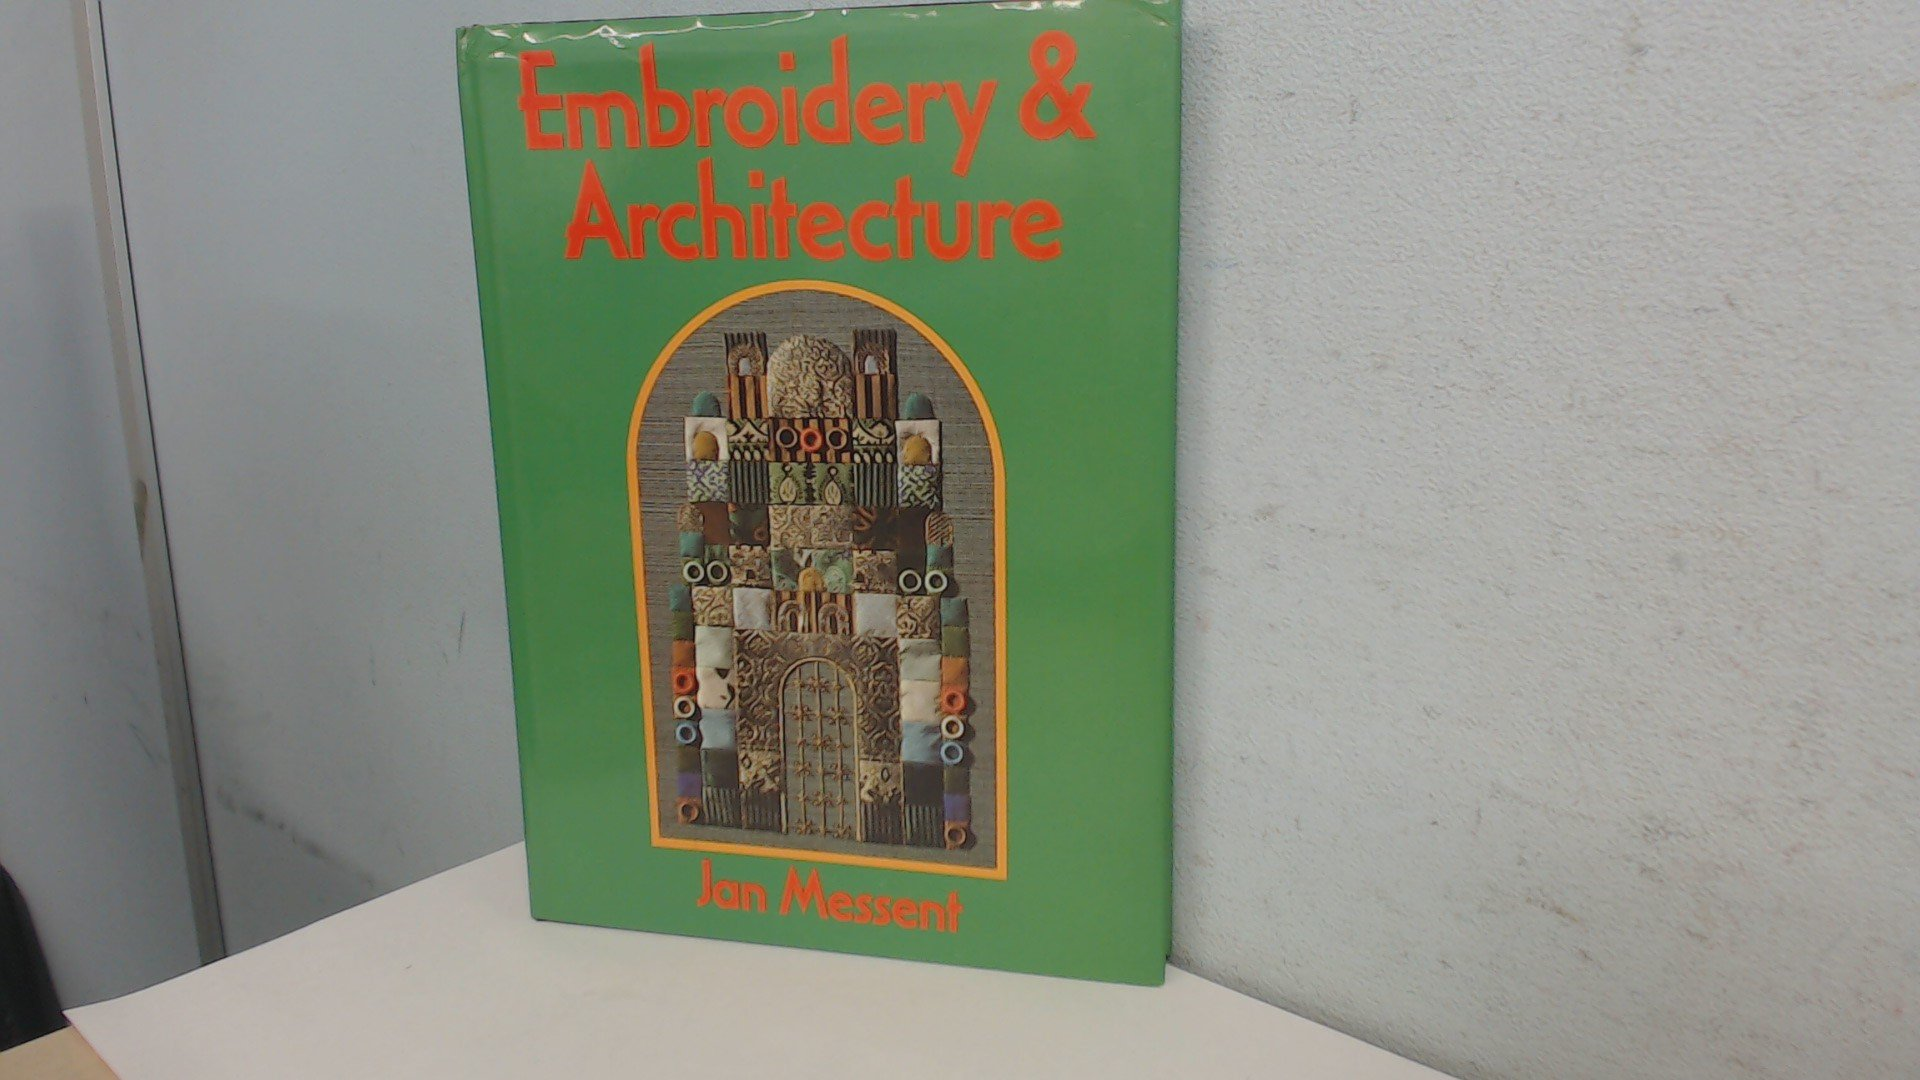 Embroidery and Architecture: Amazon.co.uk: Jan Messent: 9780713437034: Books